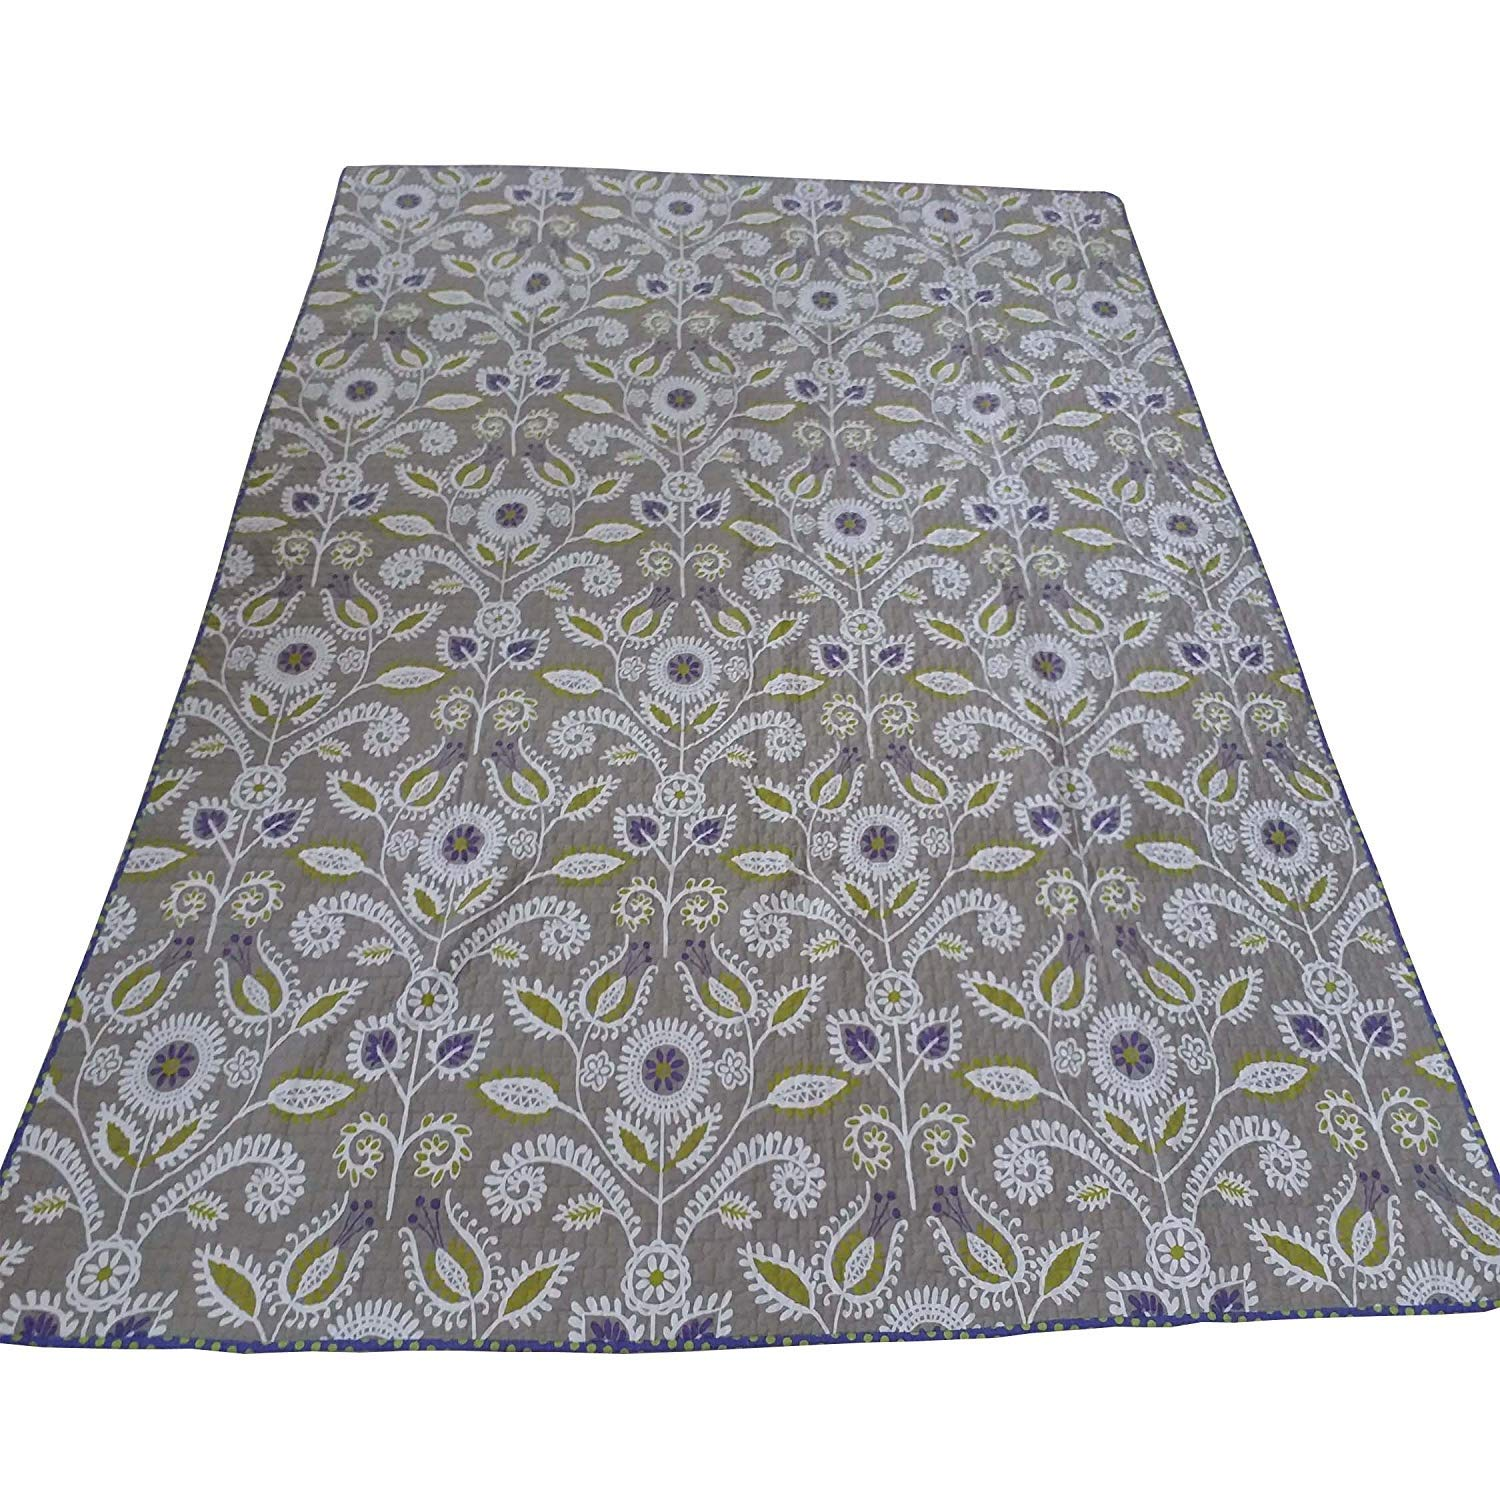 Cotton Tale Designs 100% Cotton Periwinkle Gray/Grey, Purple, Green Floral & Polka Dots Dot Reversible Quilt - Girl - Twin & Full/Queen (Full/Queen) by Cotton Tale Designs